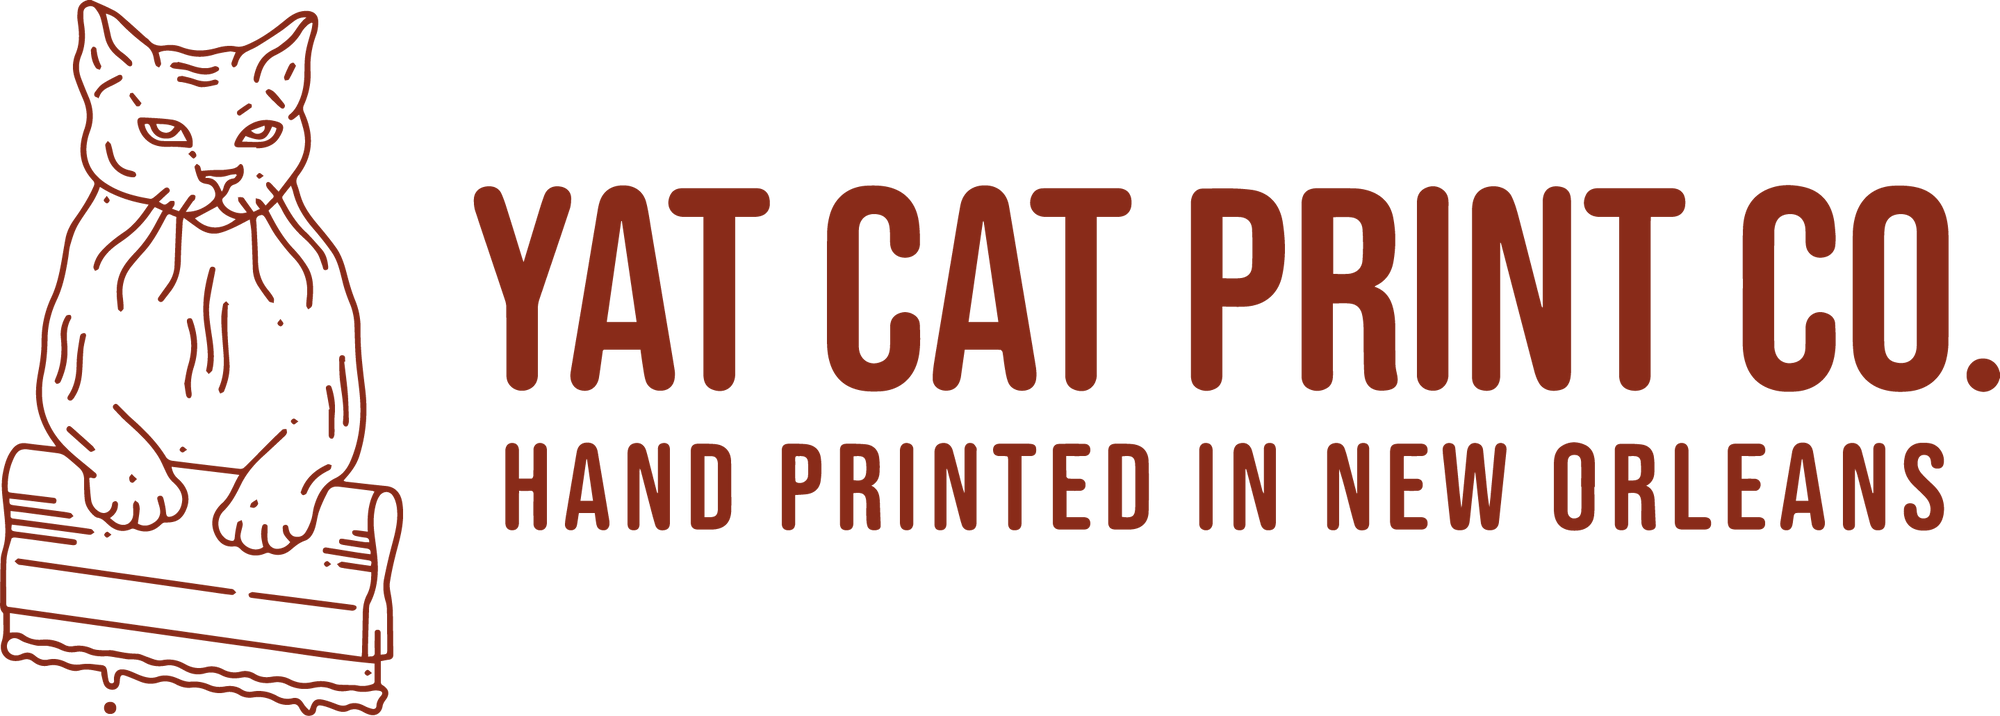 Yat Cat Print Co.